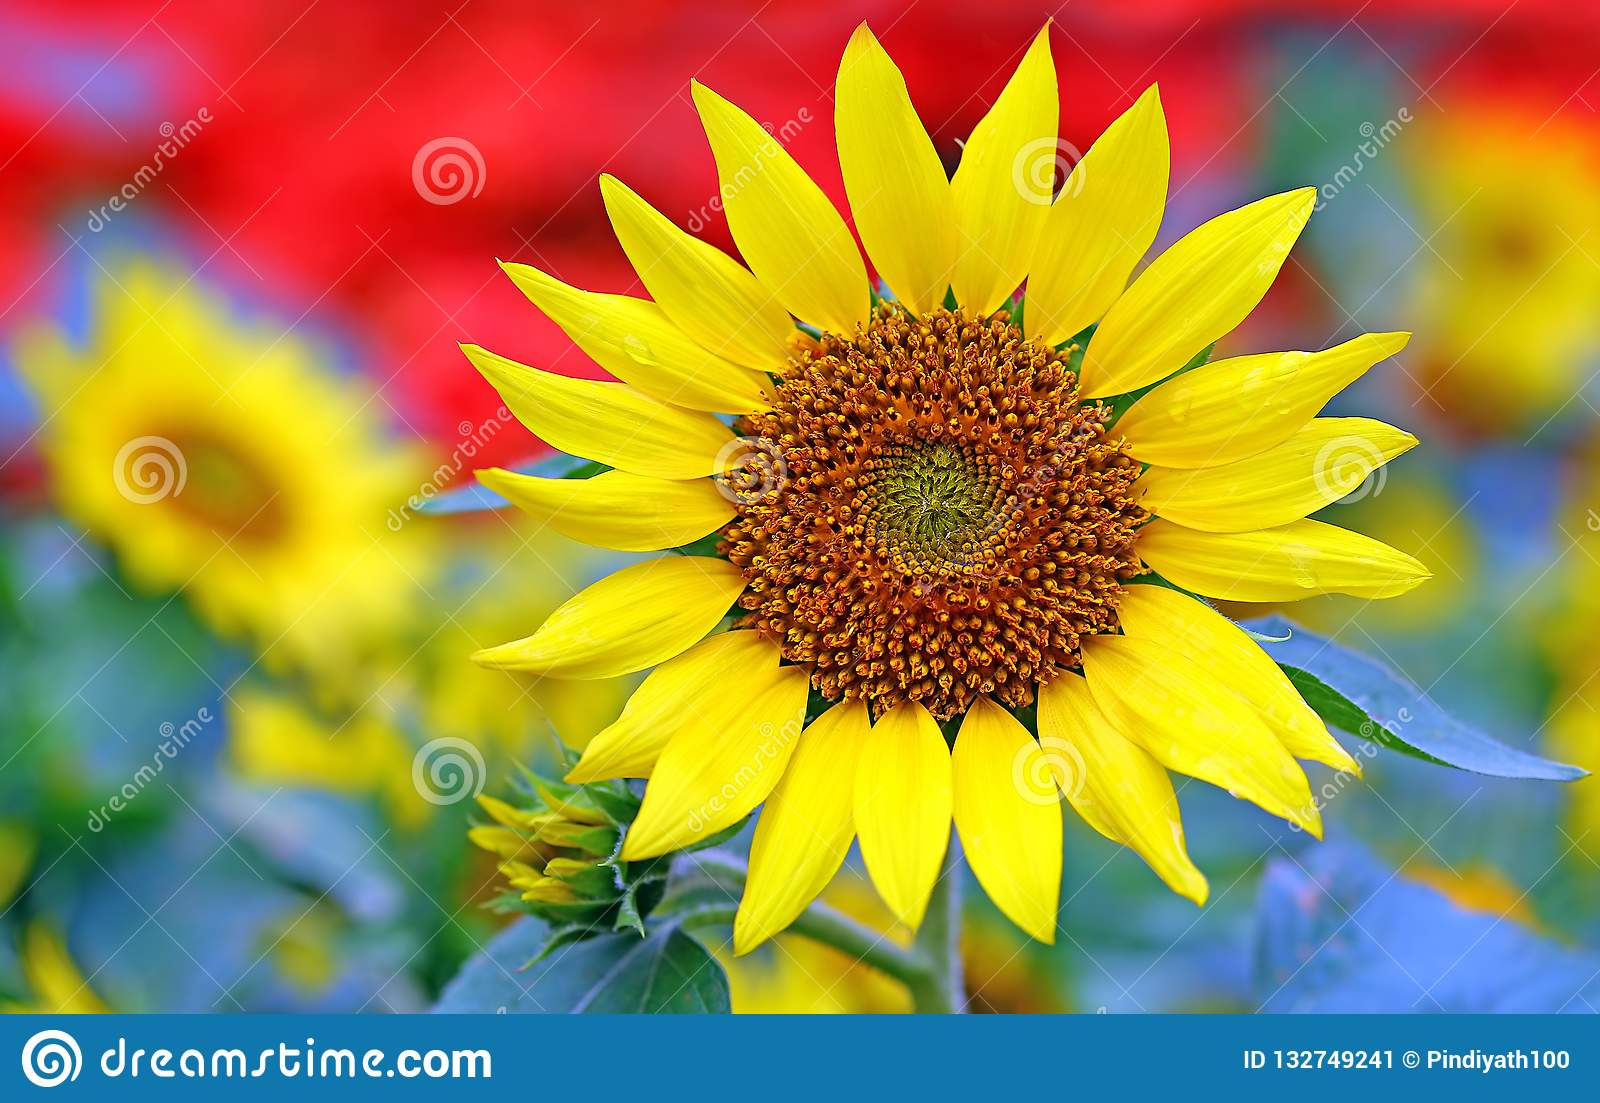 Bright and cheerful sunflower on a sunny day